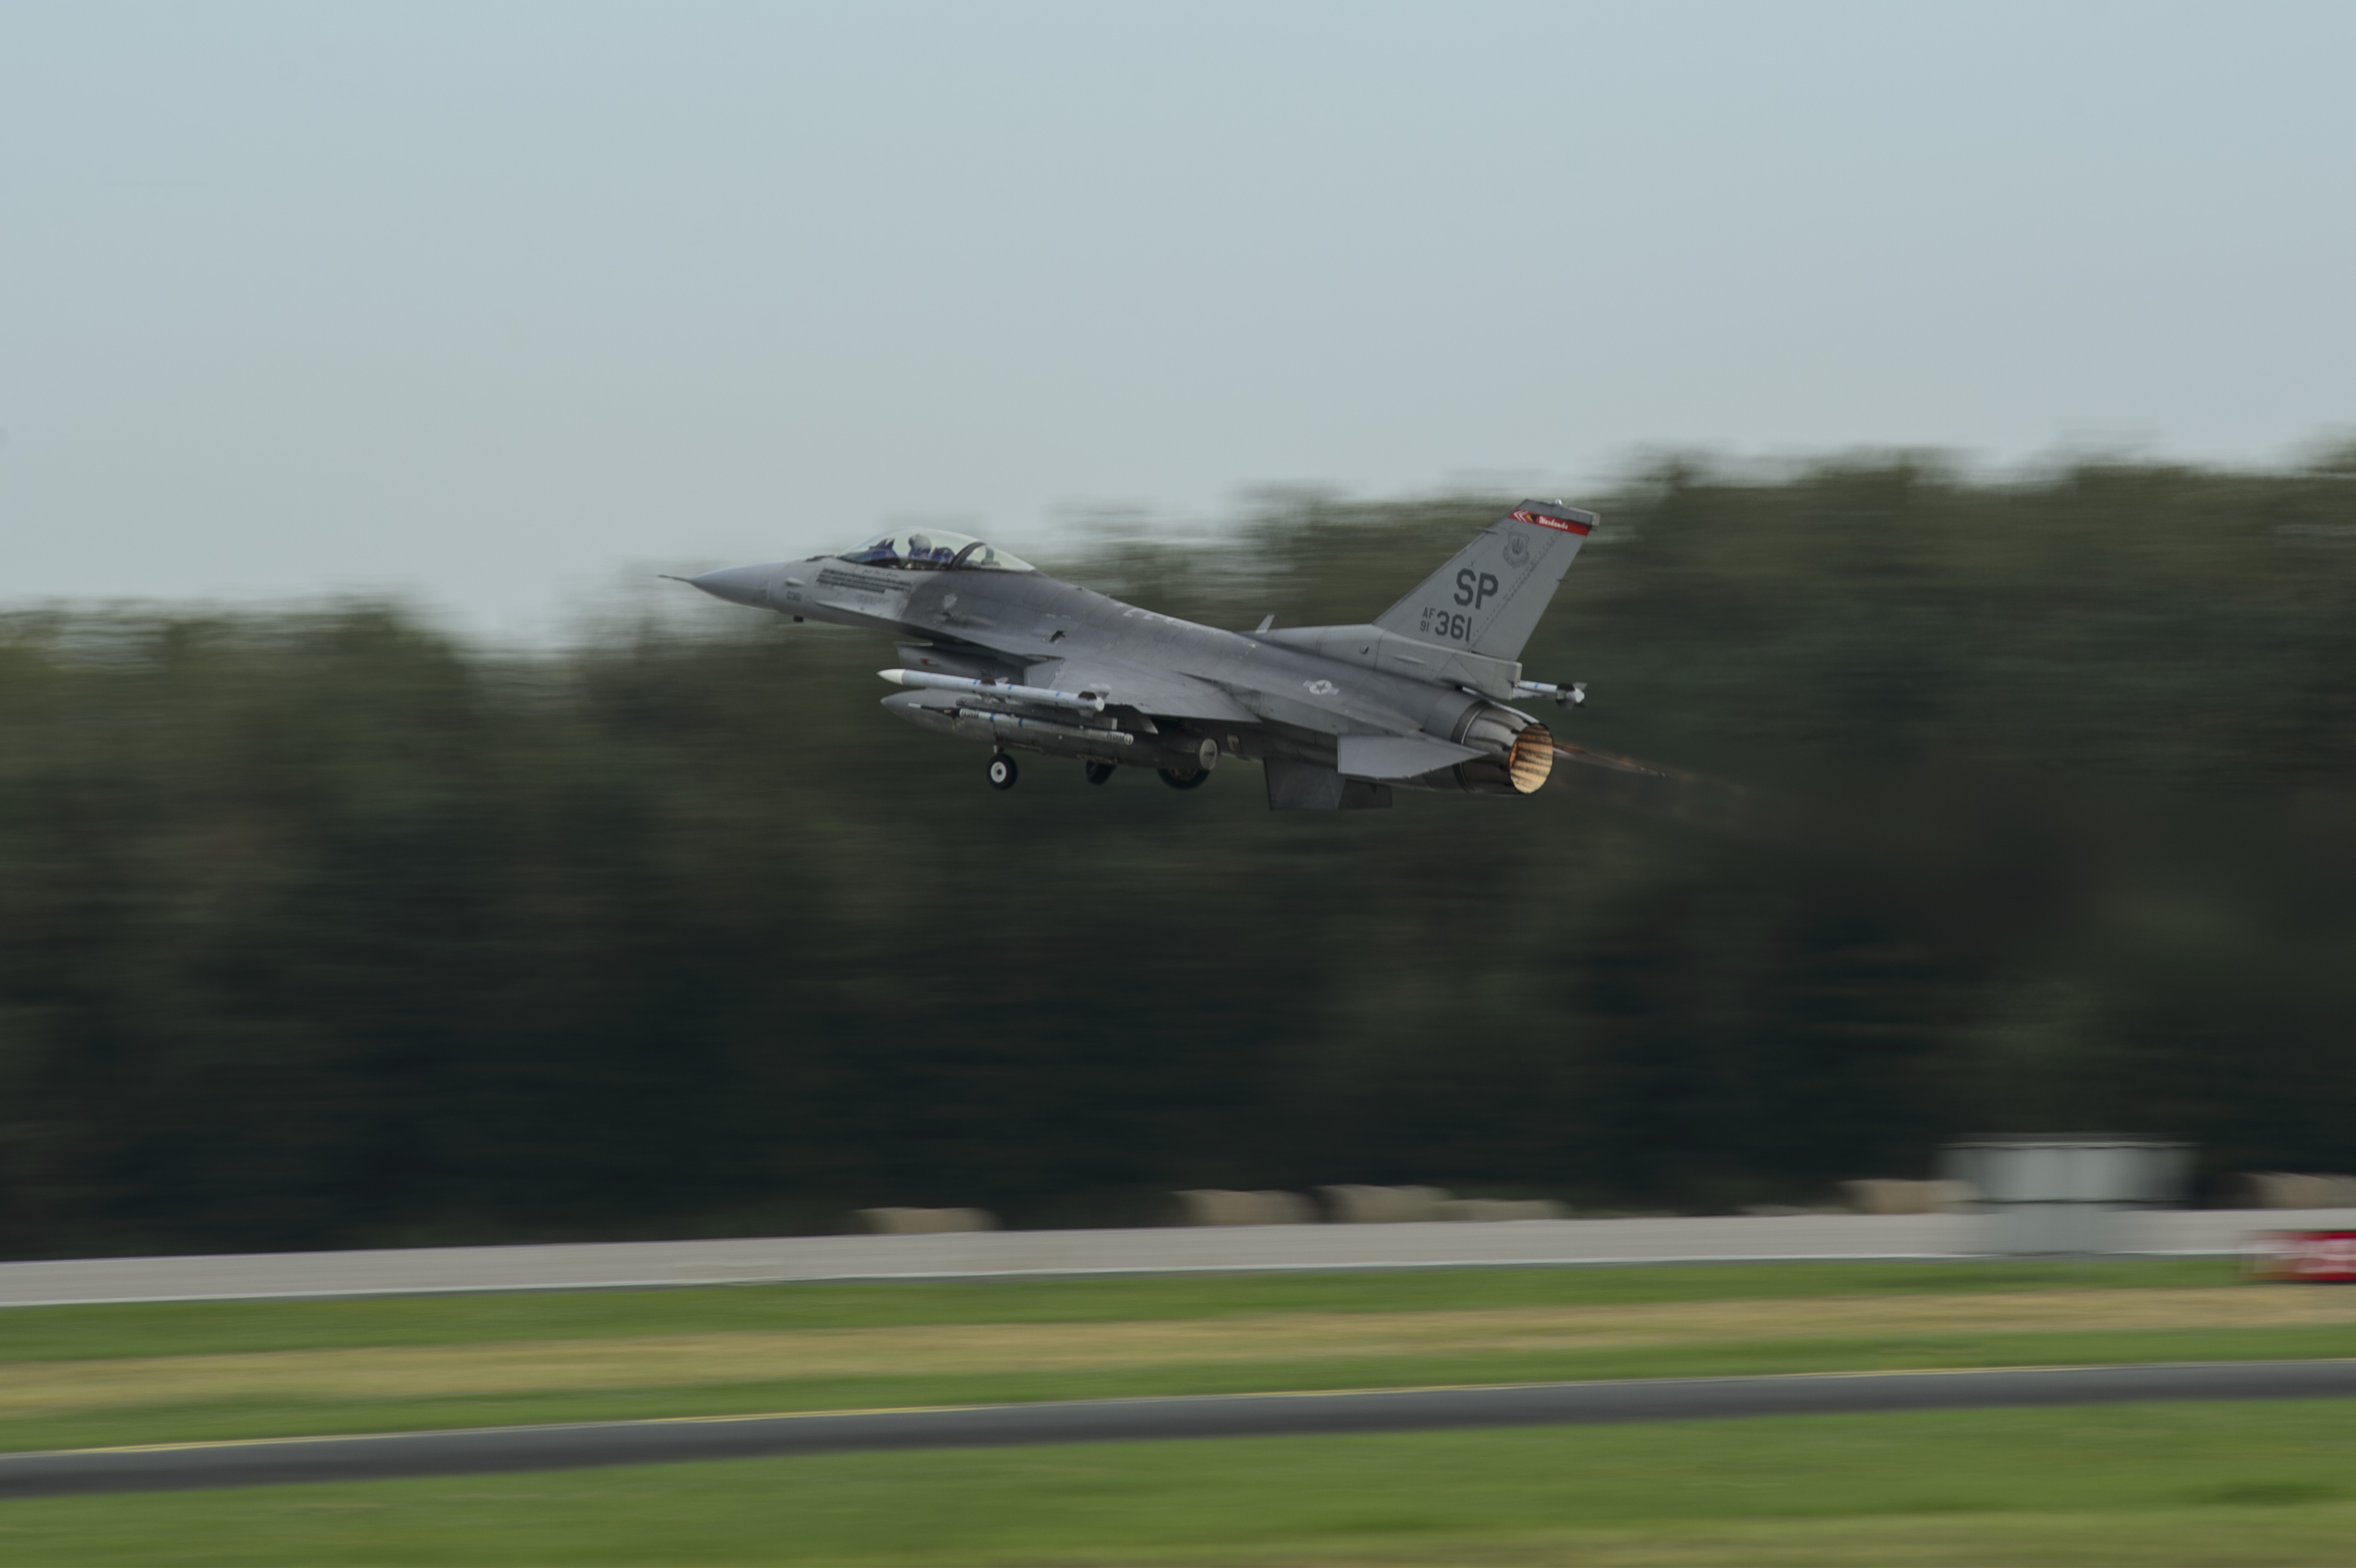 A U.S. Air Force F-16 Fighting Falcon assigned to the 480th Fighter Squadron takes off at Krzesiny Air Base, Poland, Sept. 12, 2017. The 480th FS is participating in bilateral training with the Polish Air Force, hosted by the 52nd Operations Group, Det. 1 in support of Operation Atlantic Resolve. (U.S. Air Force photo by Staff Sgt. Jonathan Snyder)